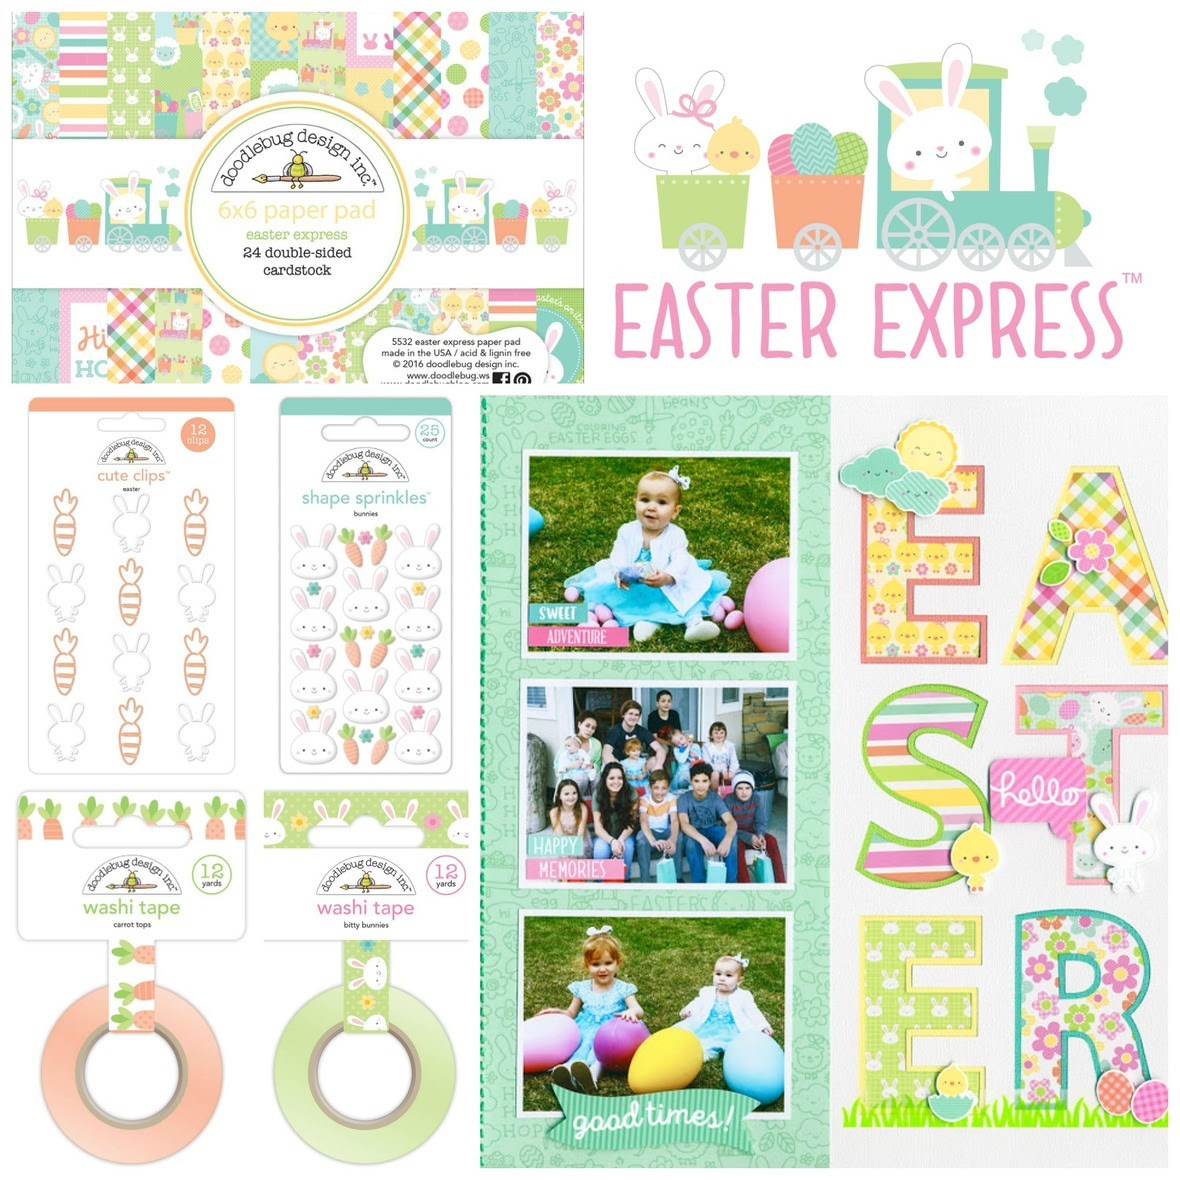 PicMonkey Collage easter express